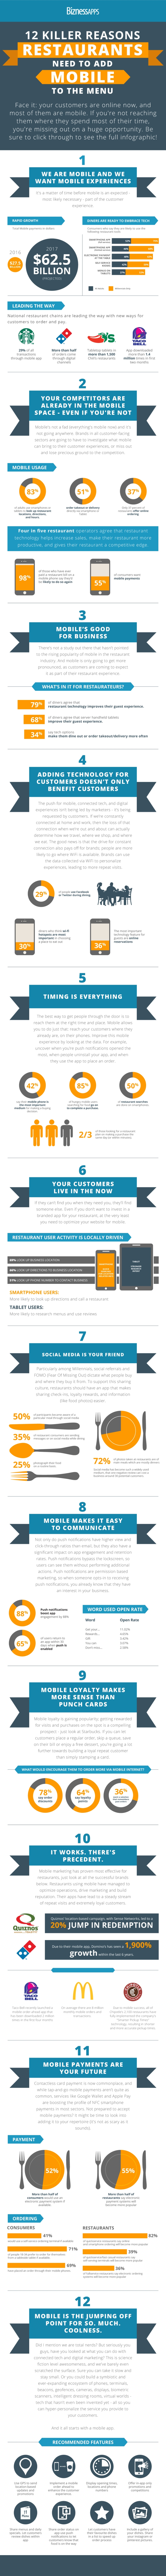 12 Killer Reasons Restaurants Need To Go Mobile [Infographic]